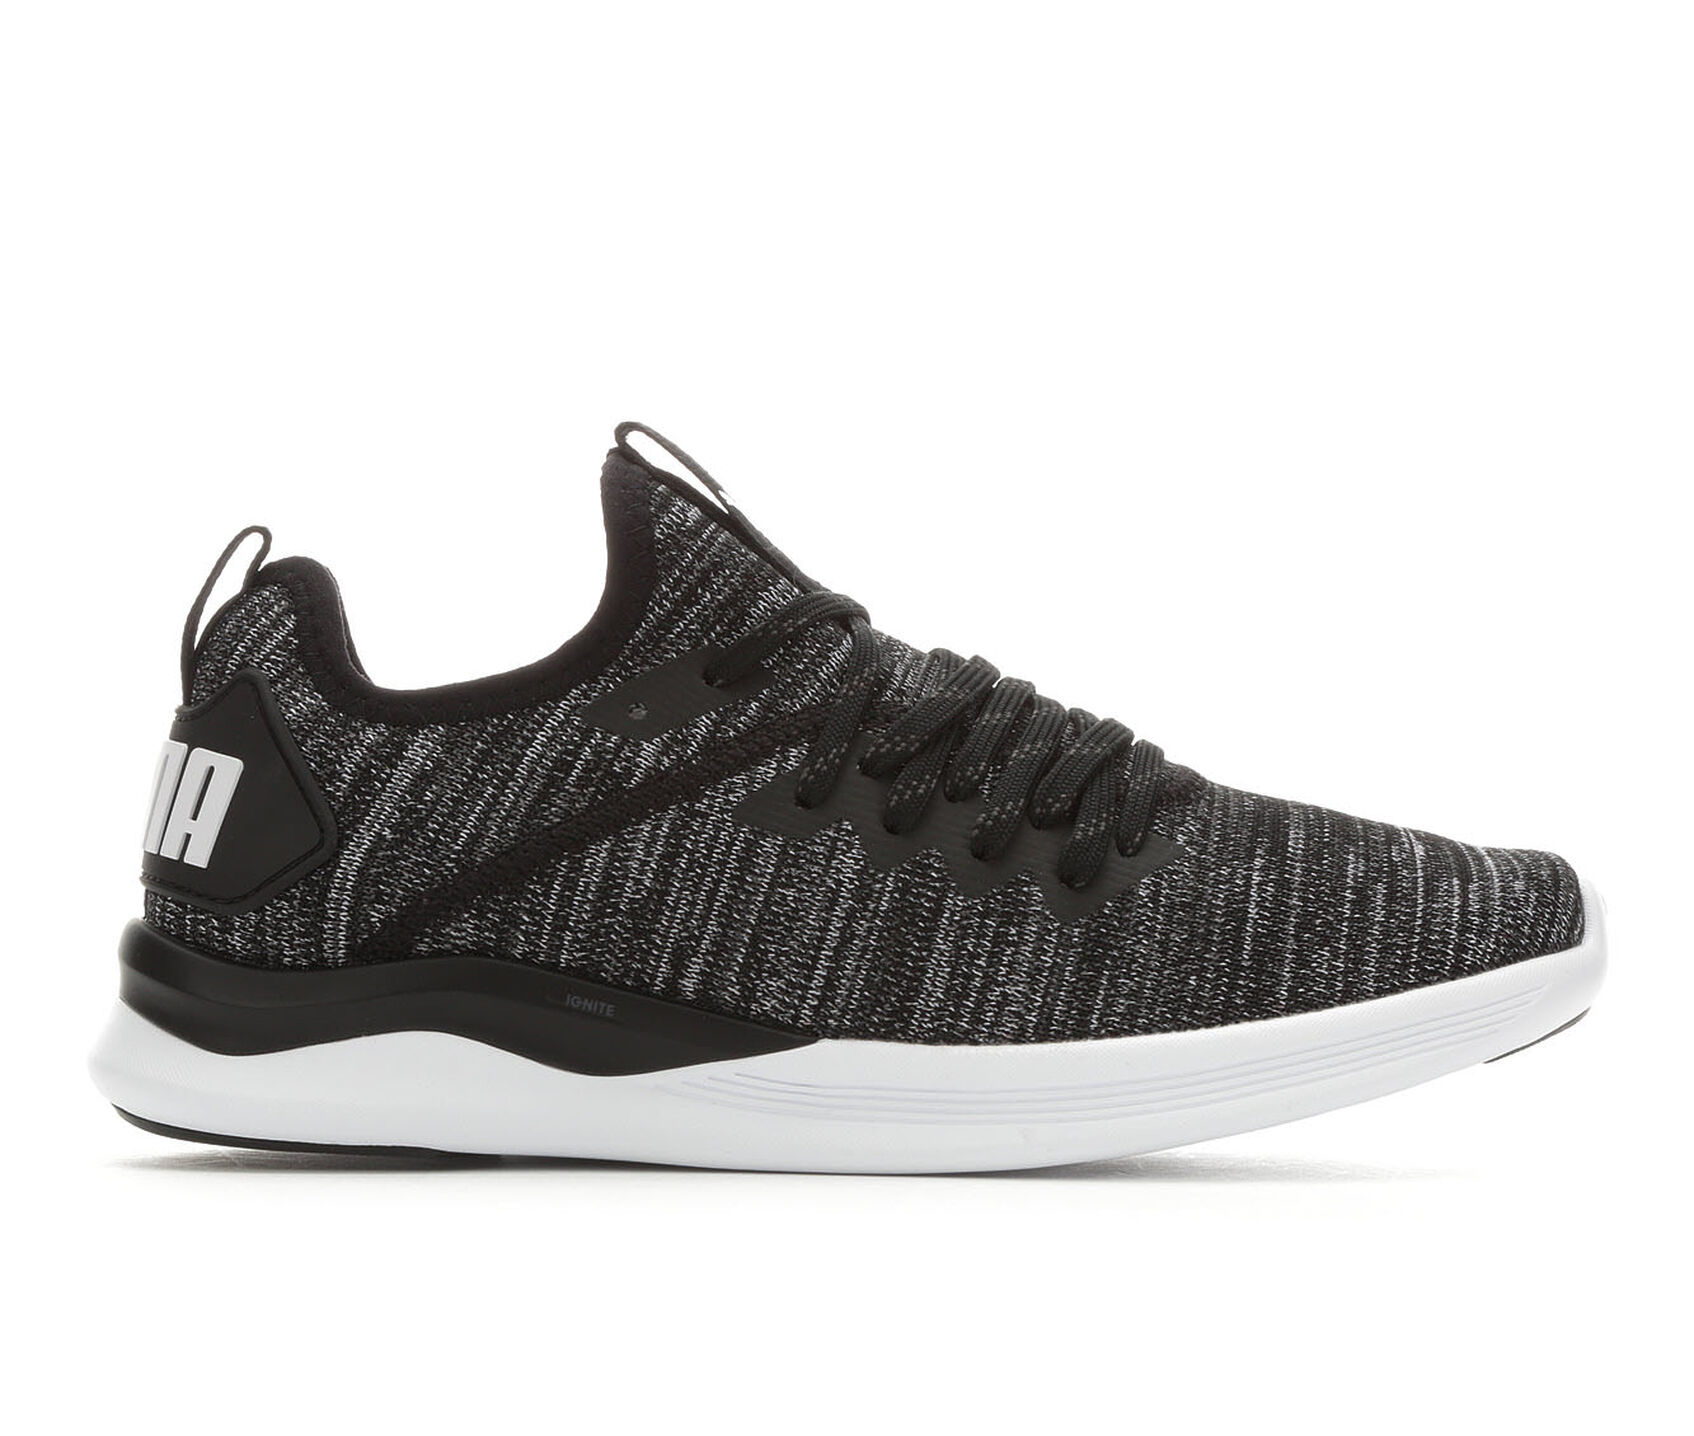 416966bb81521f Women s Puma Ignite Flash Evoknit Sneakers